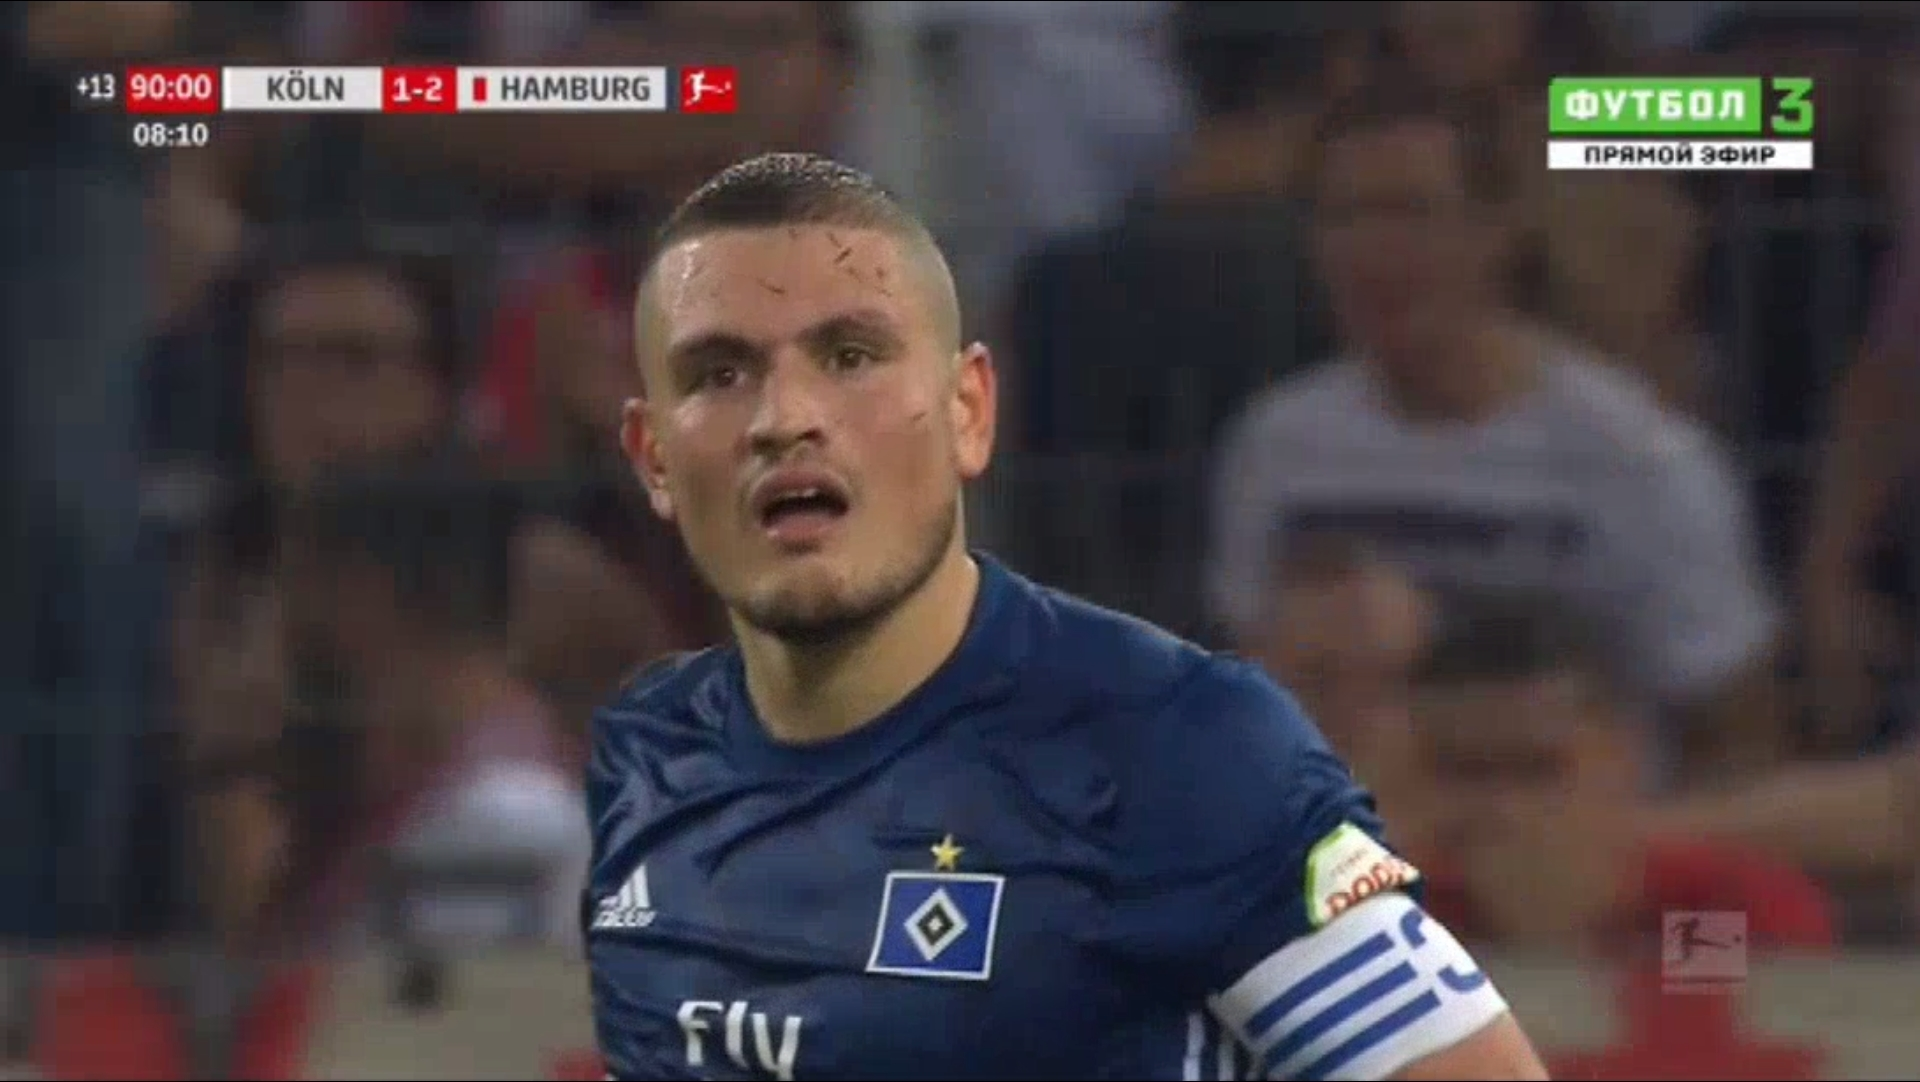 Papadopoulos (HSV) yellow card against Koln after an awful simulation